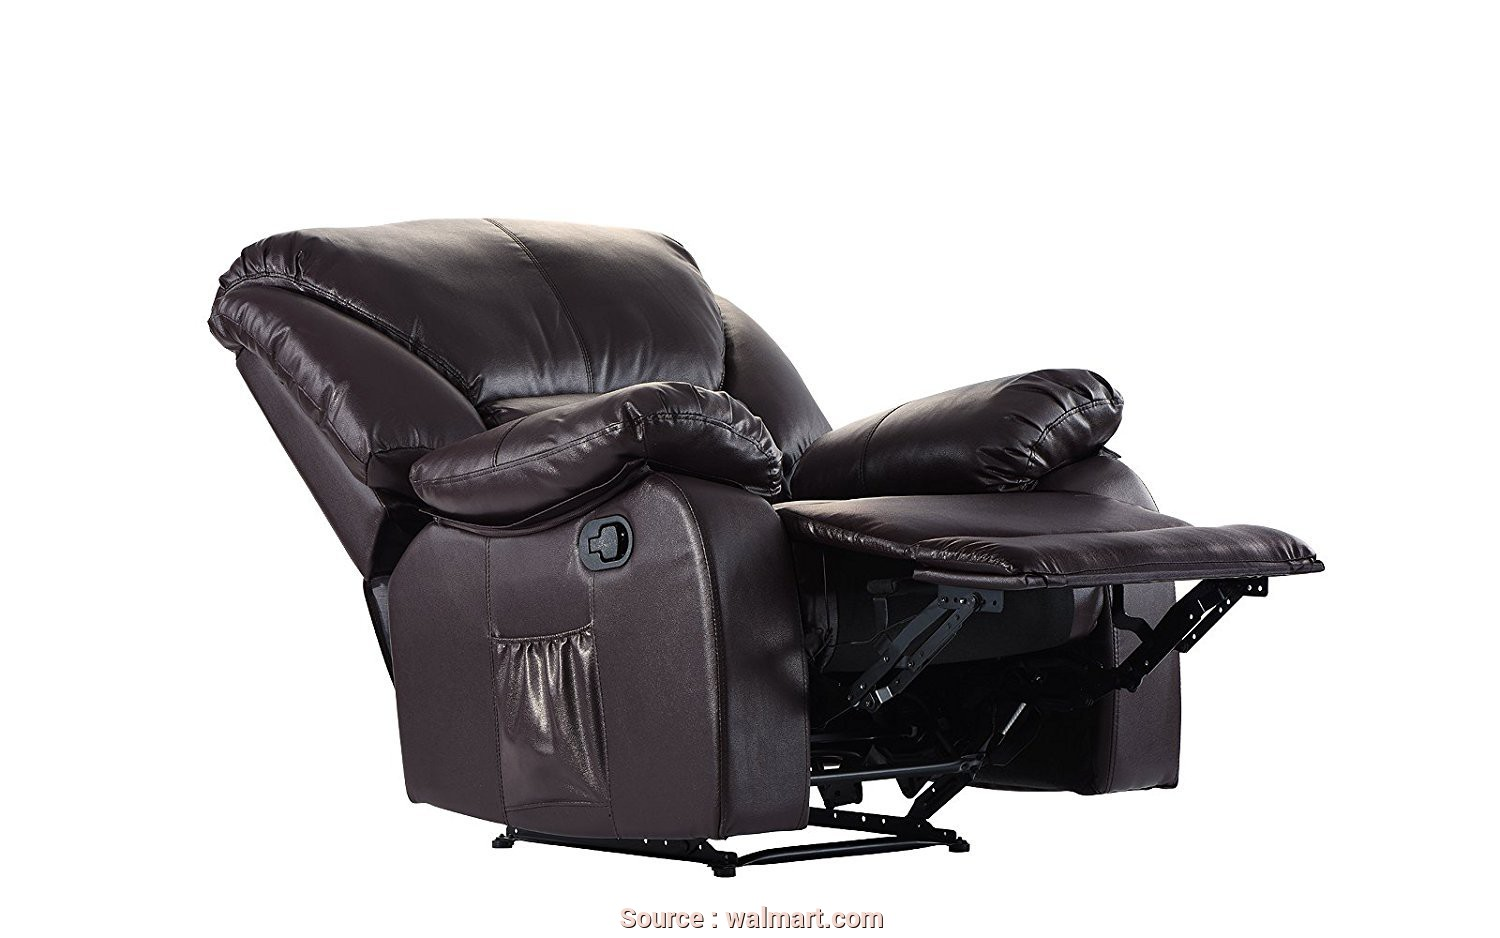 Divano Roma Furniture Relax Reclining Massage Chair, Esclusivo Full Body Massage Recliner Chair, PU Leather Reclining Massage Chair (Brown), Walmart.Com